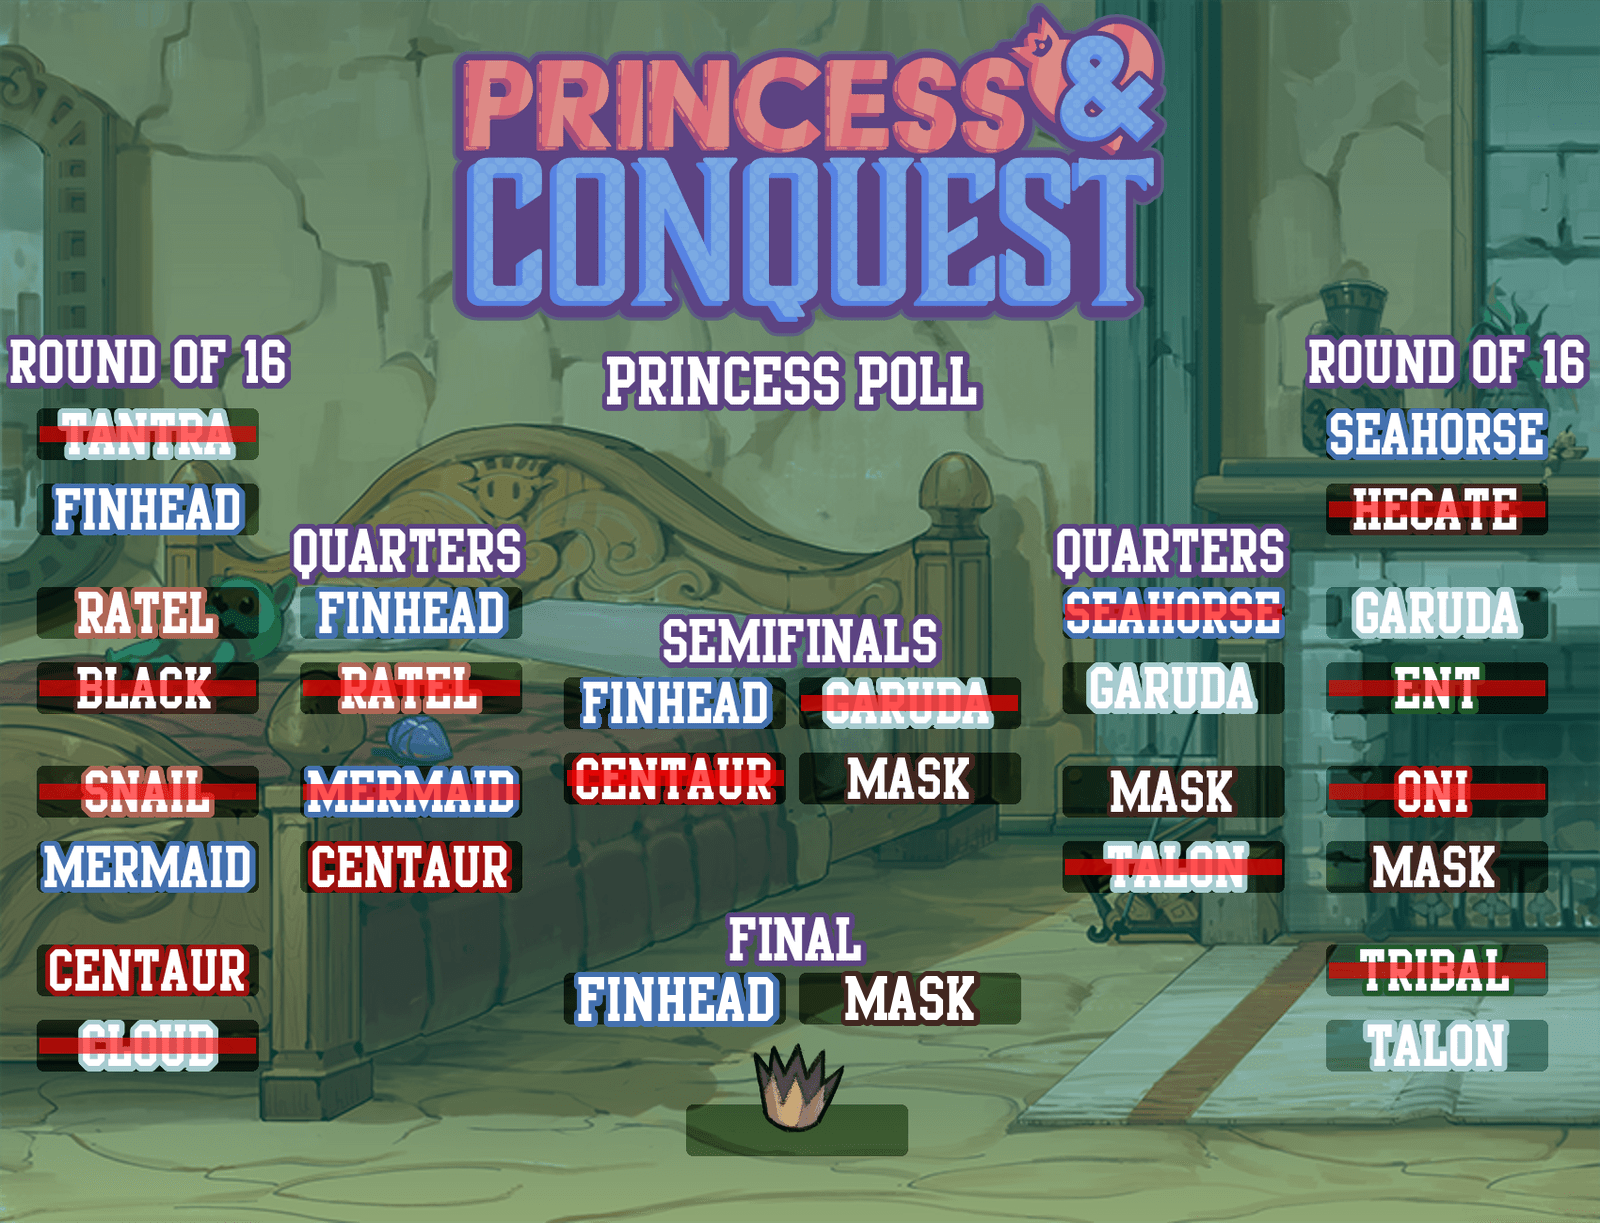 Princess & Conquest